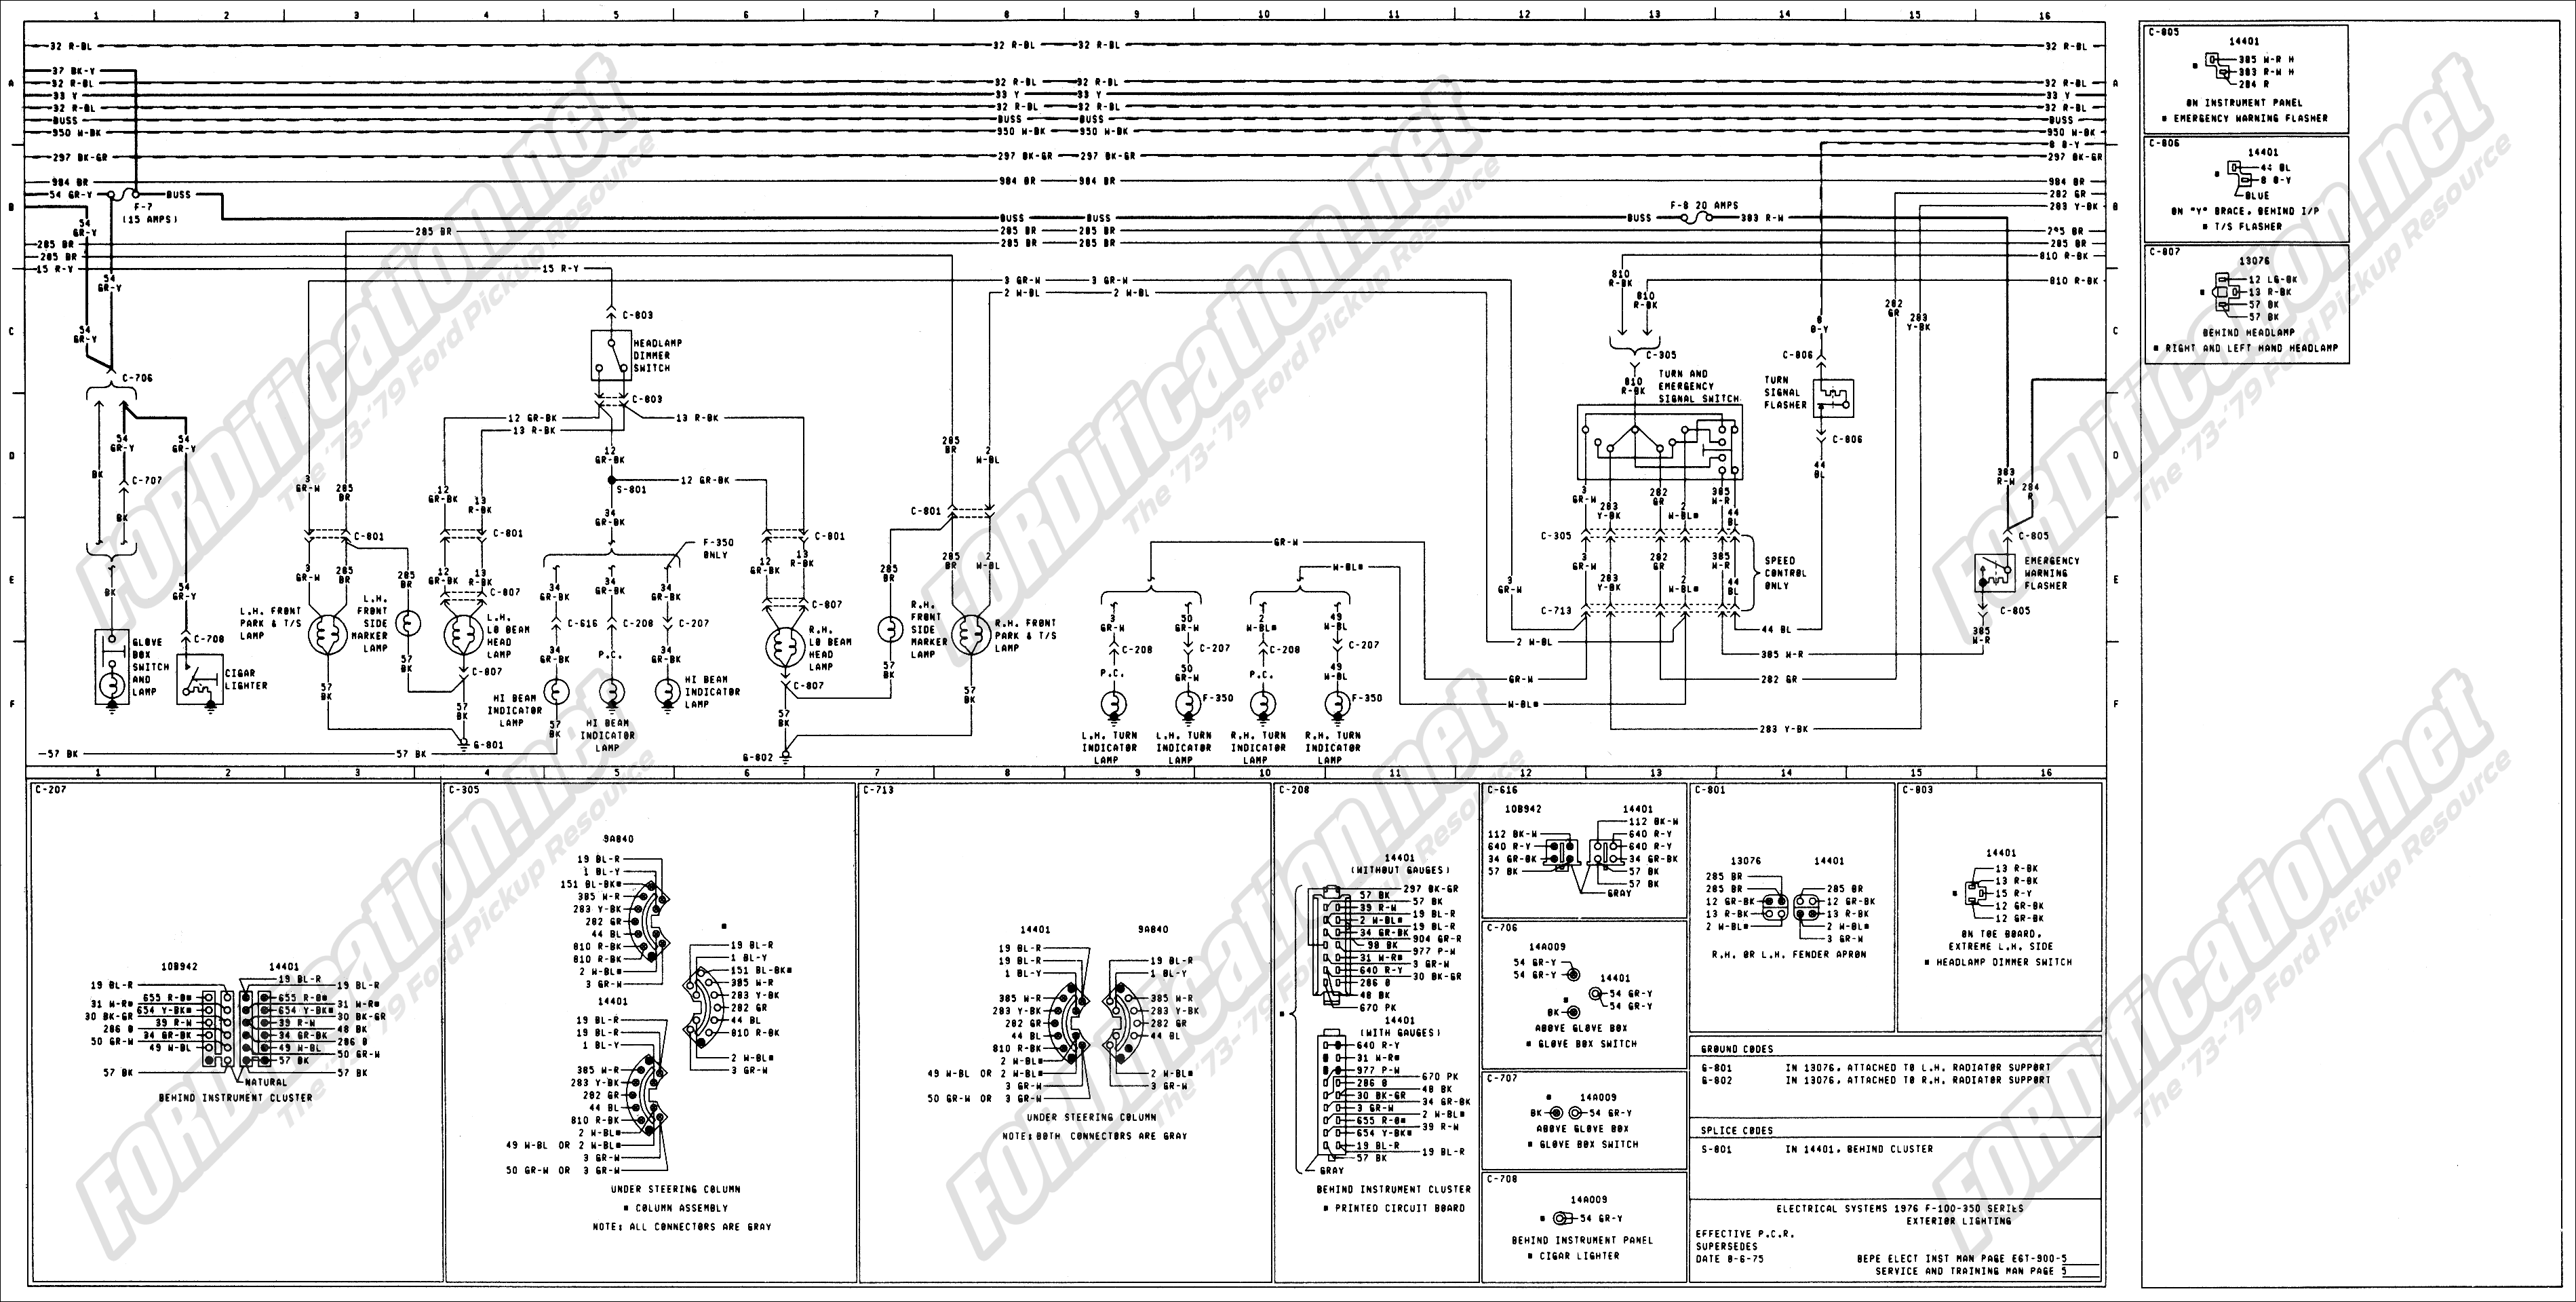 1968 Ford F100 Wiring Diagram Stereo Reveolution Of 1975 Impala 76 F 150 Diagrams For Another Blog About U2022 Rh Twosoutherndivas Co